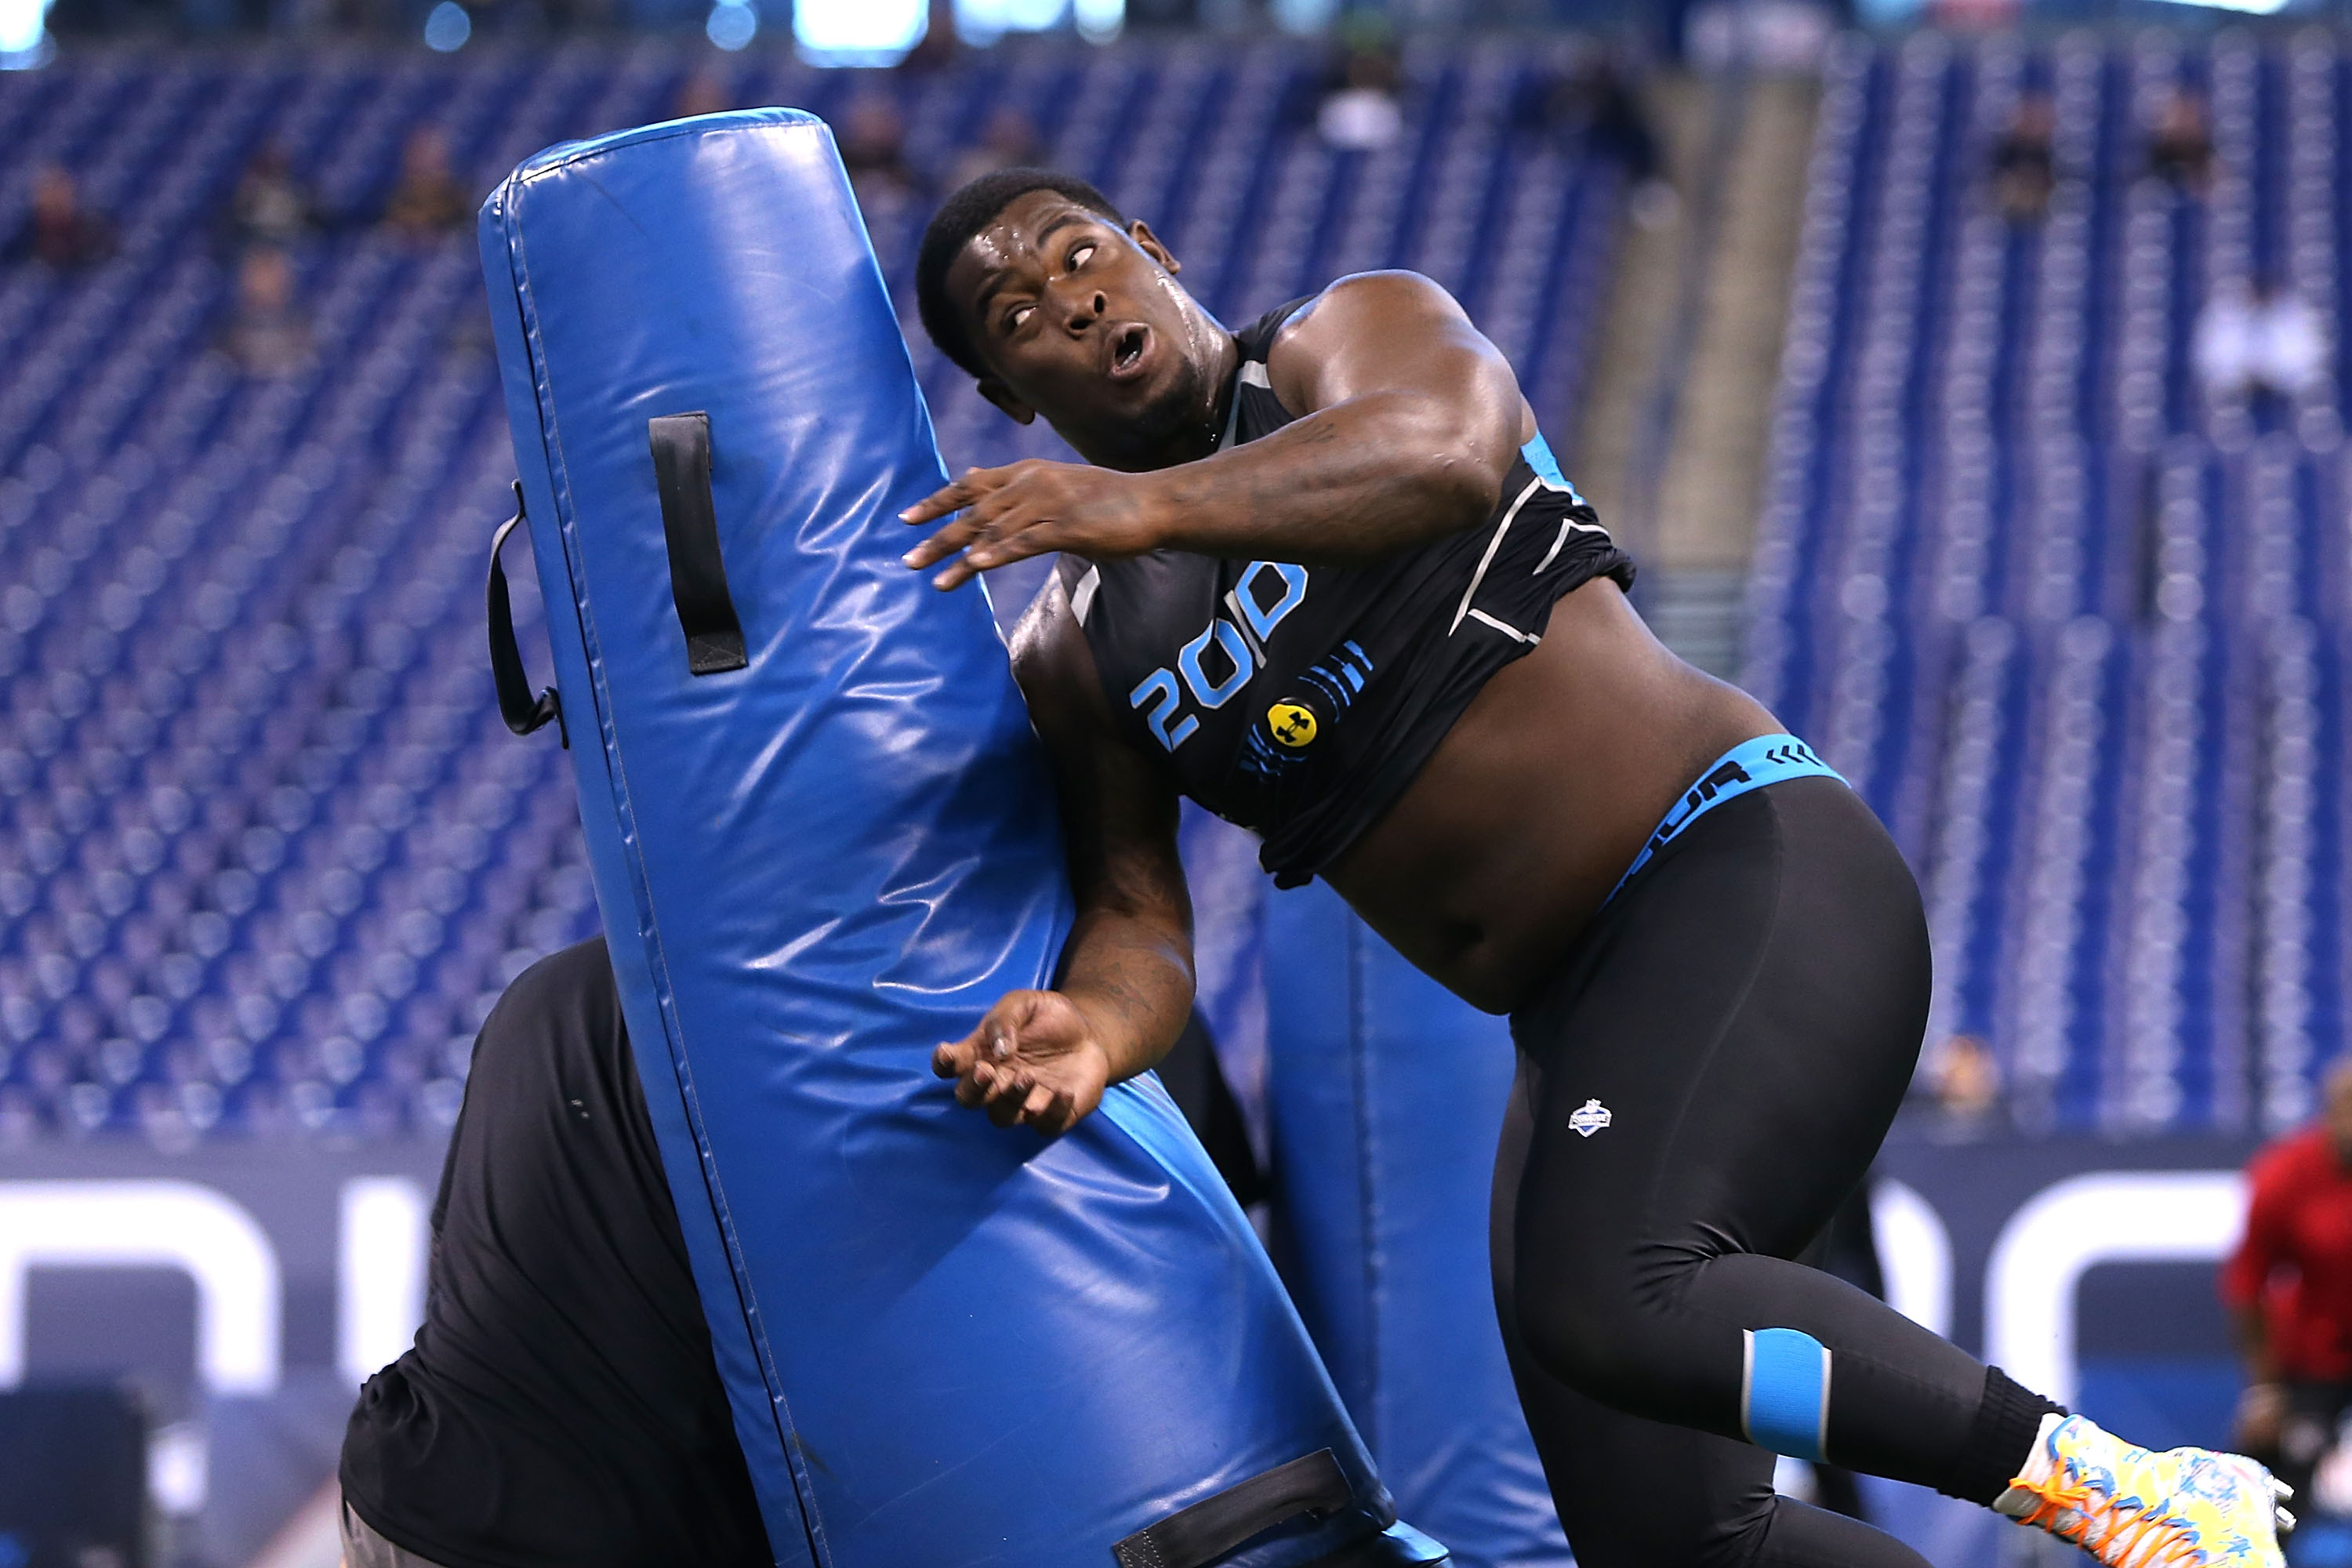 Florida State University defensive nose tackle Timmy Jernigan runs through drills at the 2014 NFL Scouting Combine at Lucas Oil Stadium in Indianapolis, on February 24, 2014. (Ben Liebenberg/NFL)